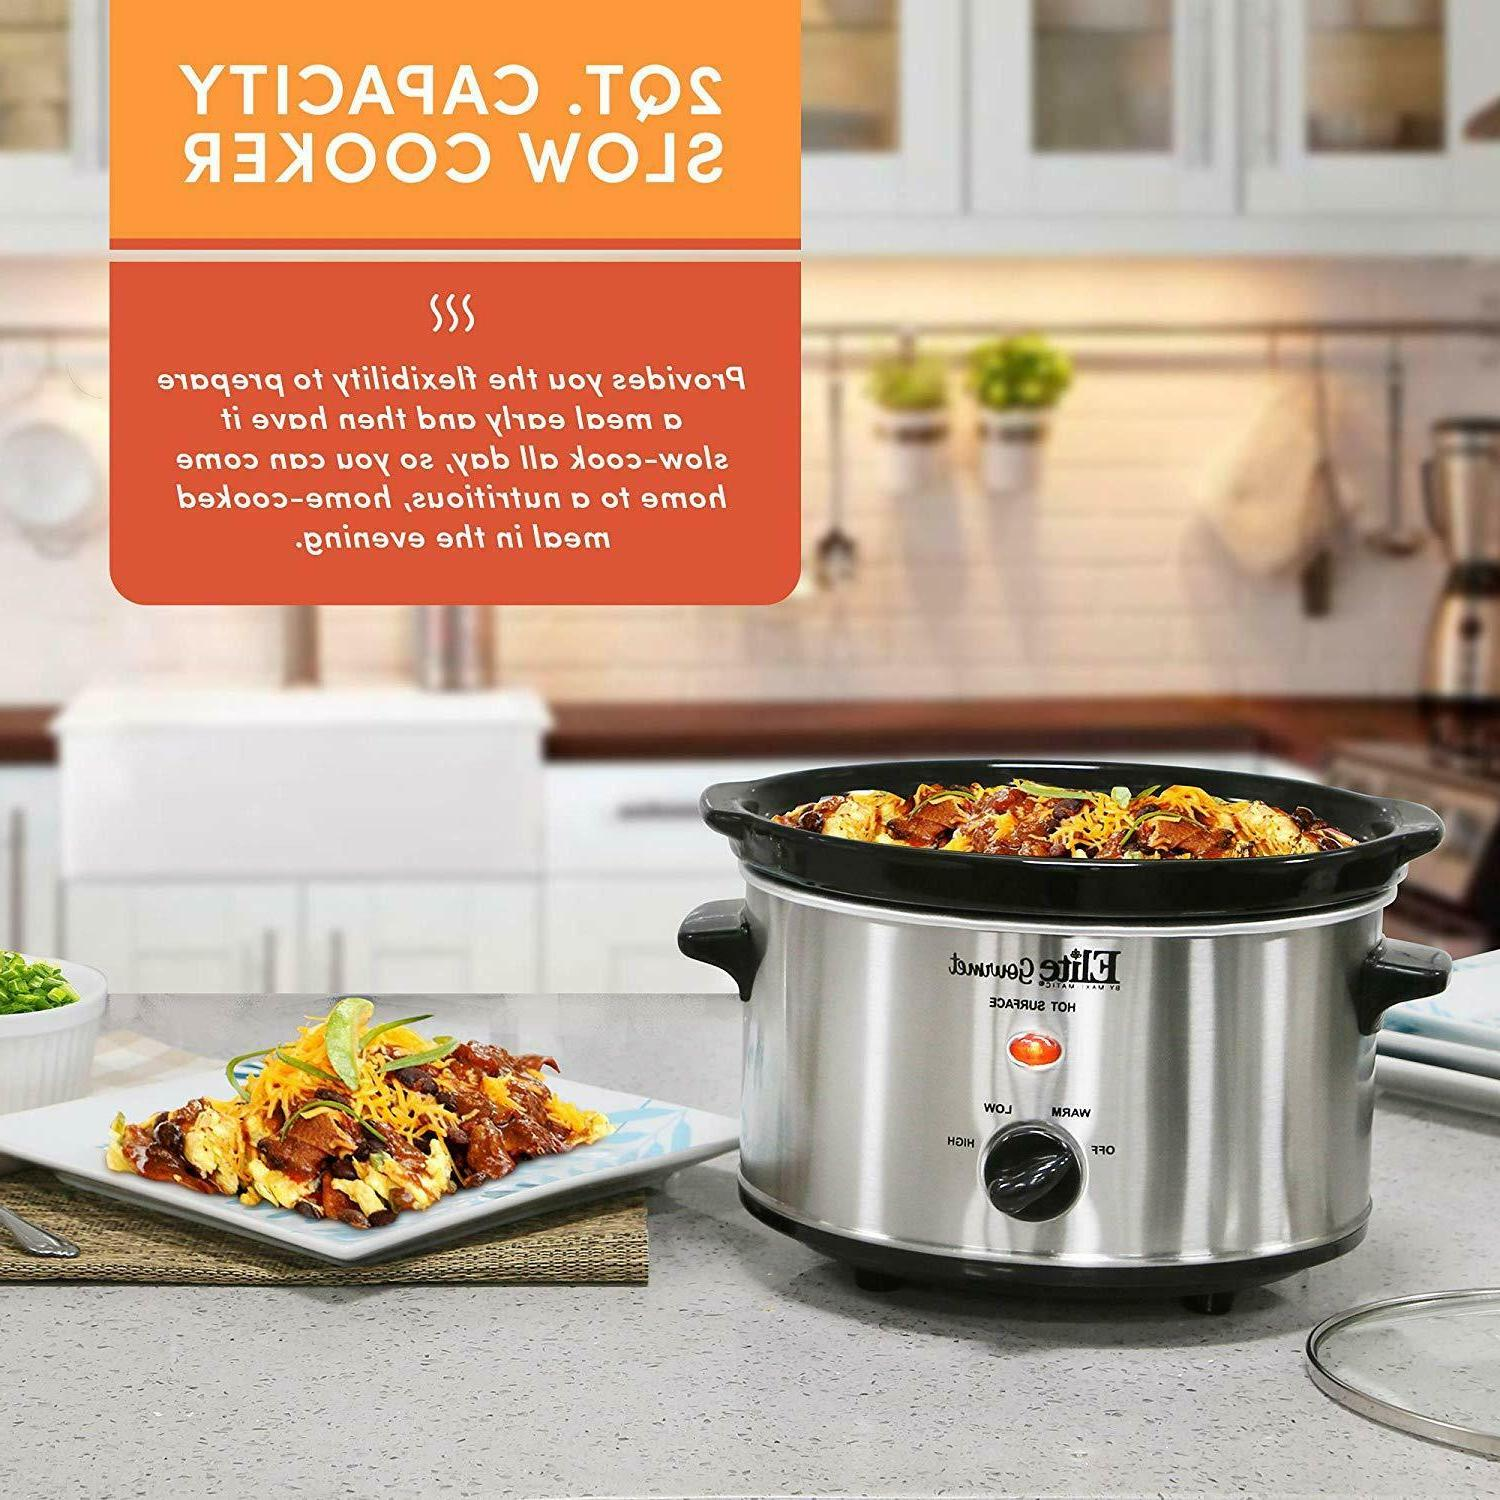 Small Cooker Stainless Steel Crock Kitchen Appliance